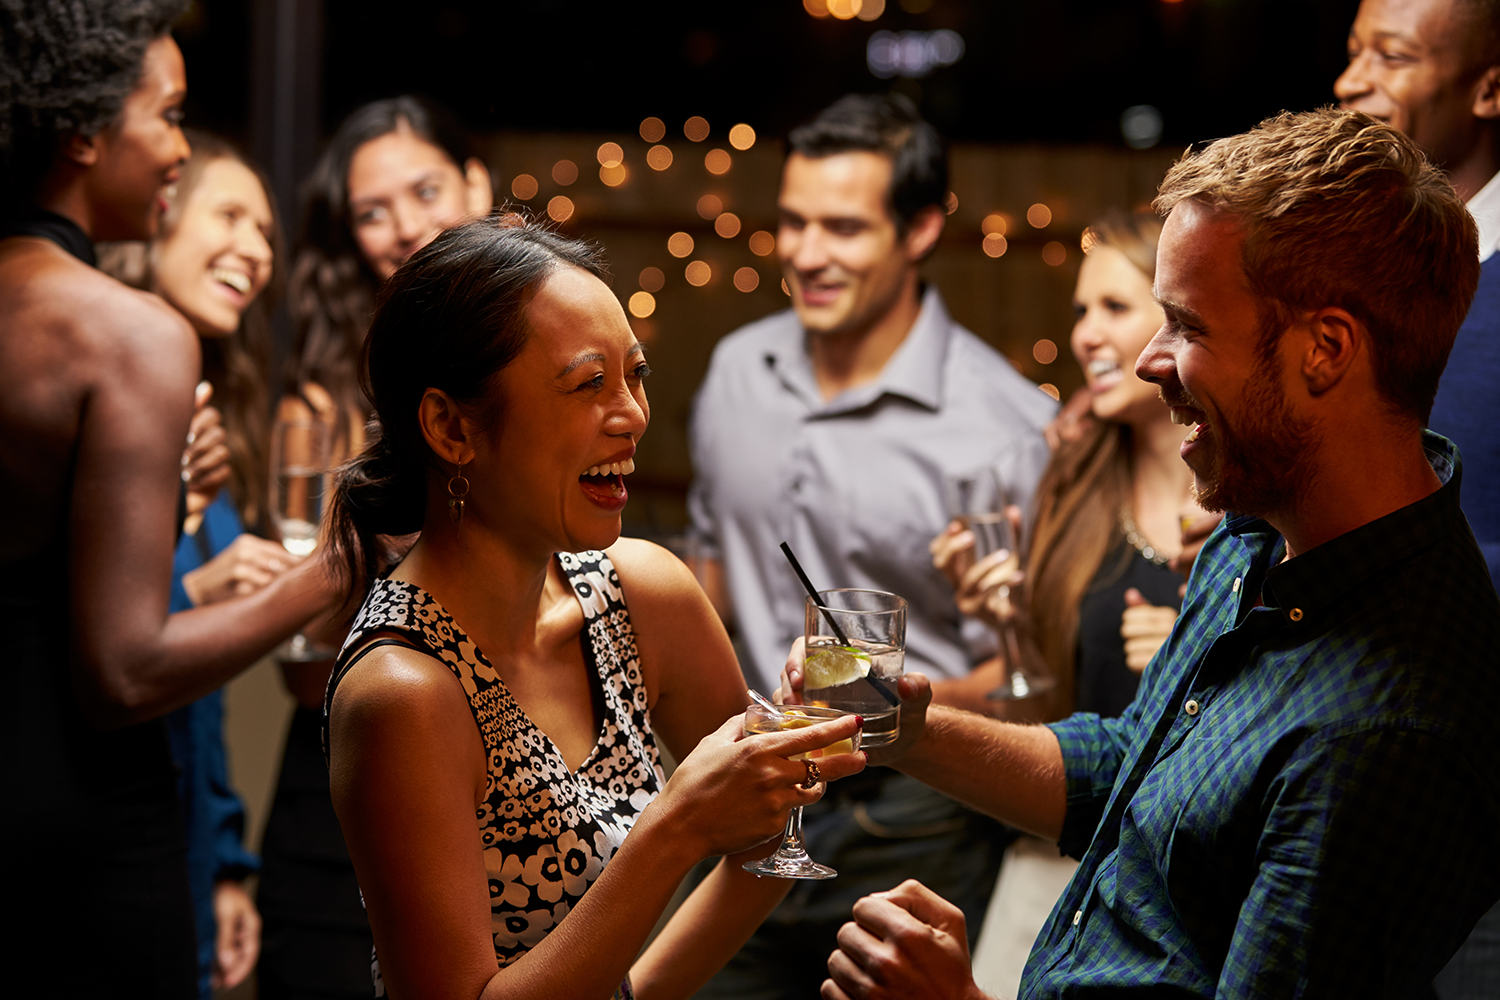 What restaurants need to market their special event